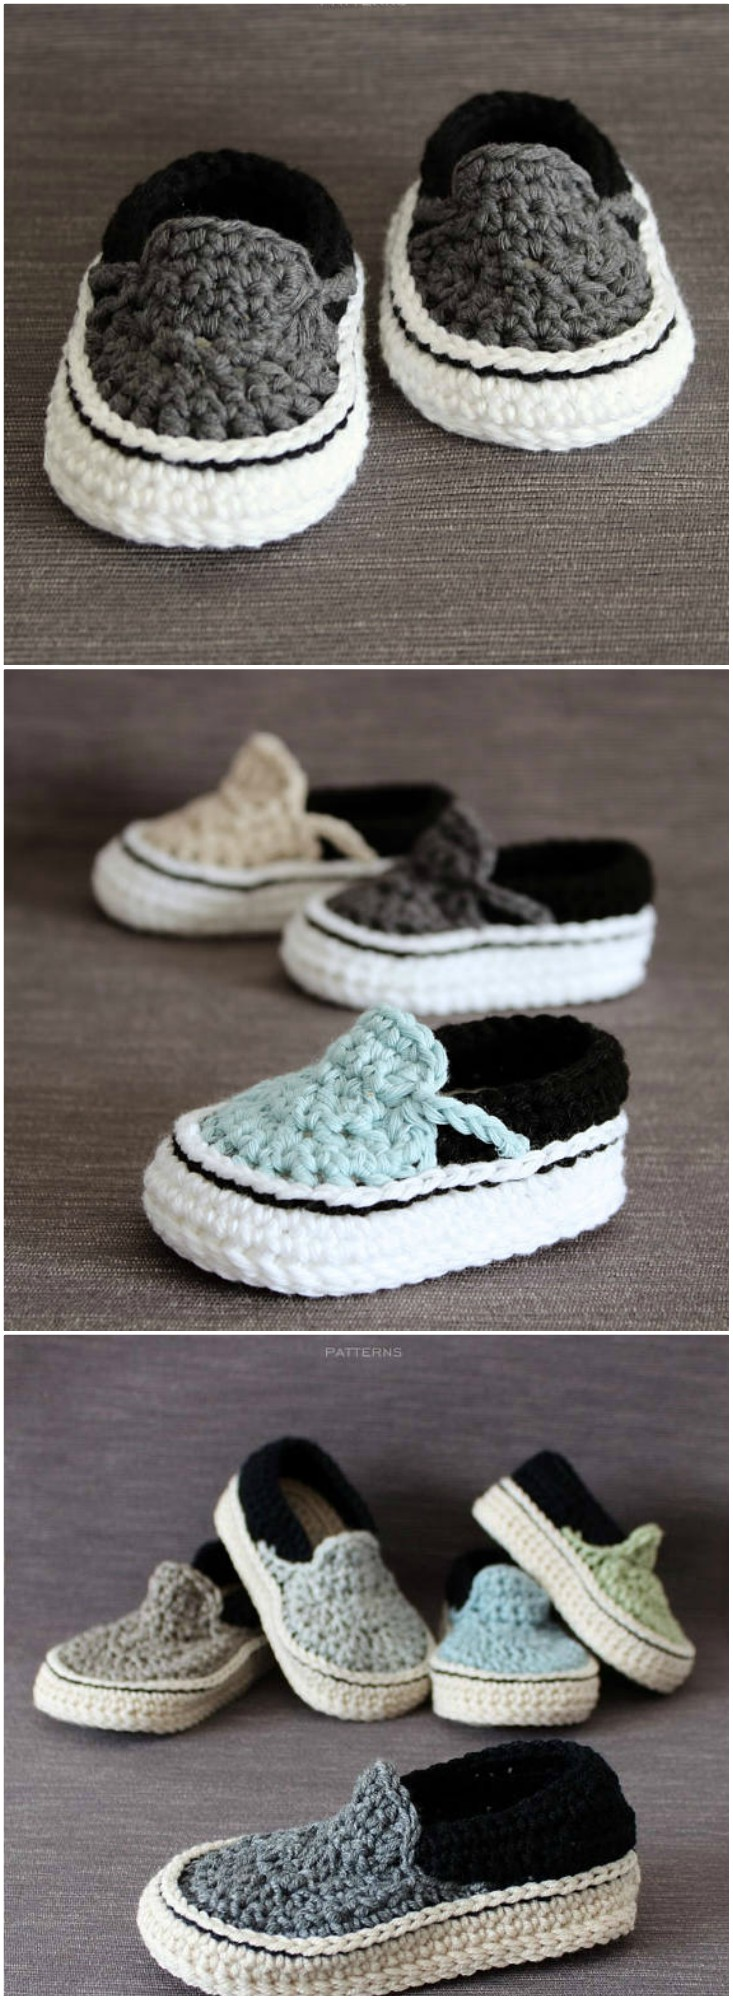 Crochet Baby Vans Pattern Super Cute Ideas You ll Love 78026701a